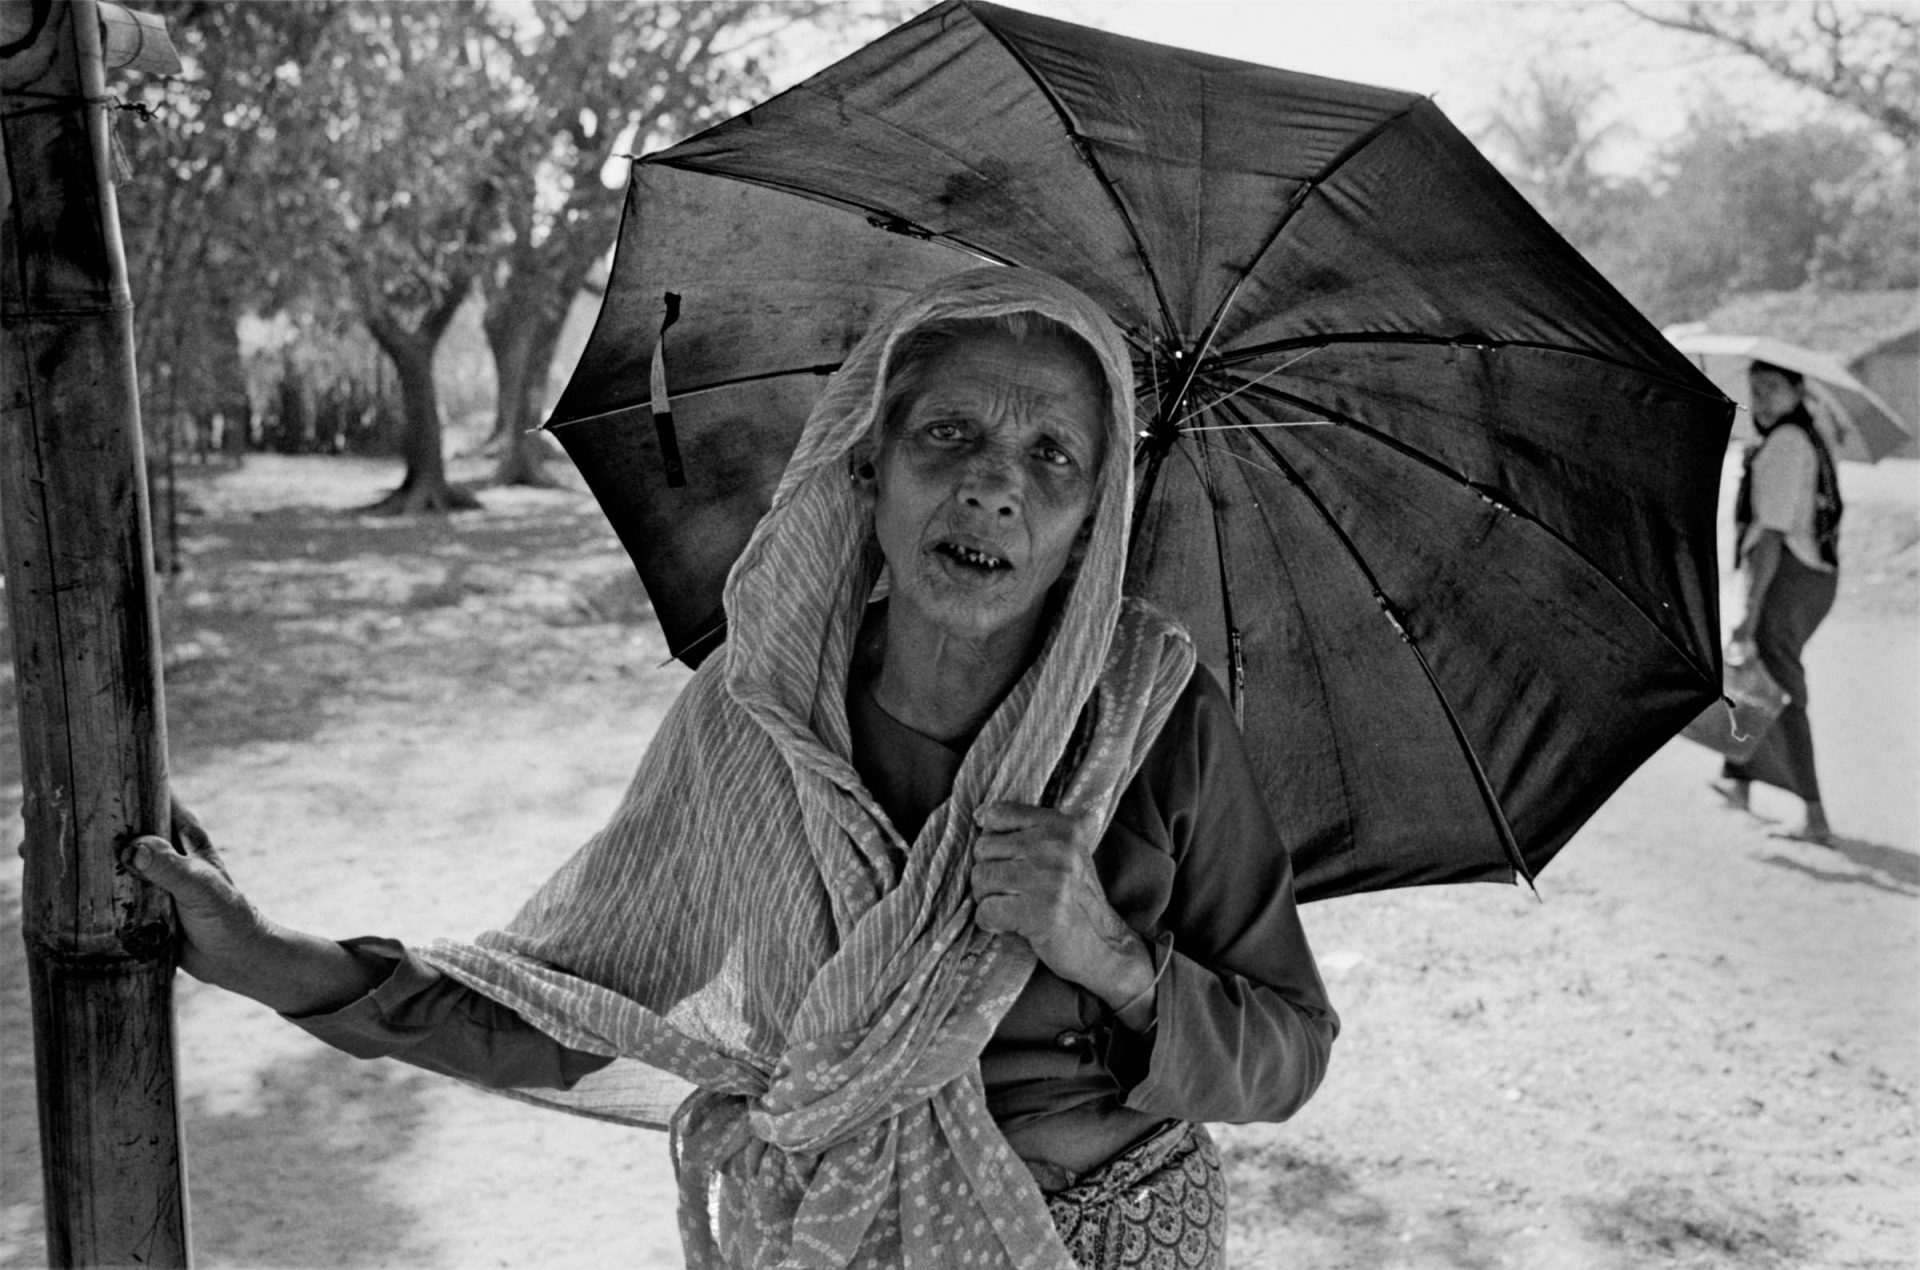 A Rohingya woman waits in the hot sun outside of a closed Da Paing medical clinic.  There is one health clinic to service more than 140,000 people living in more than a dozen IDP camps.  Sittwe, 2013.